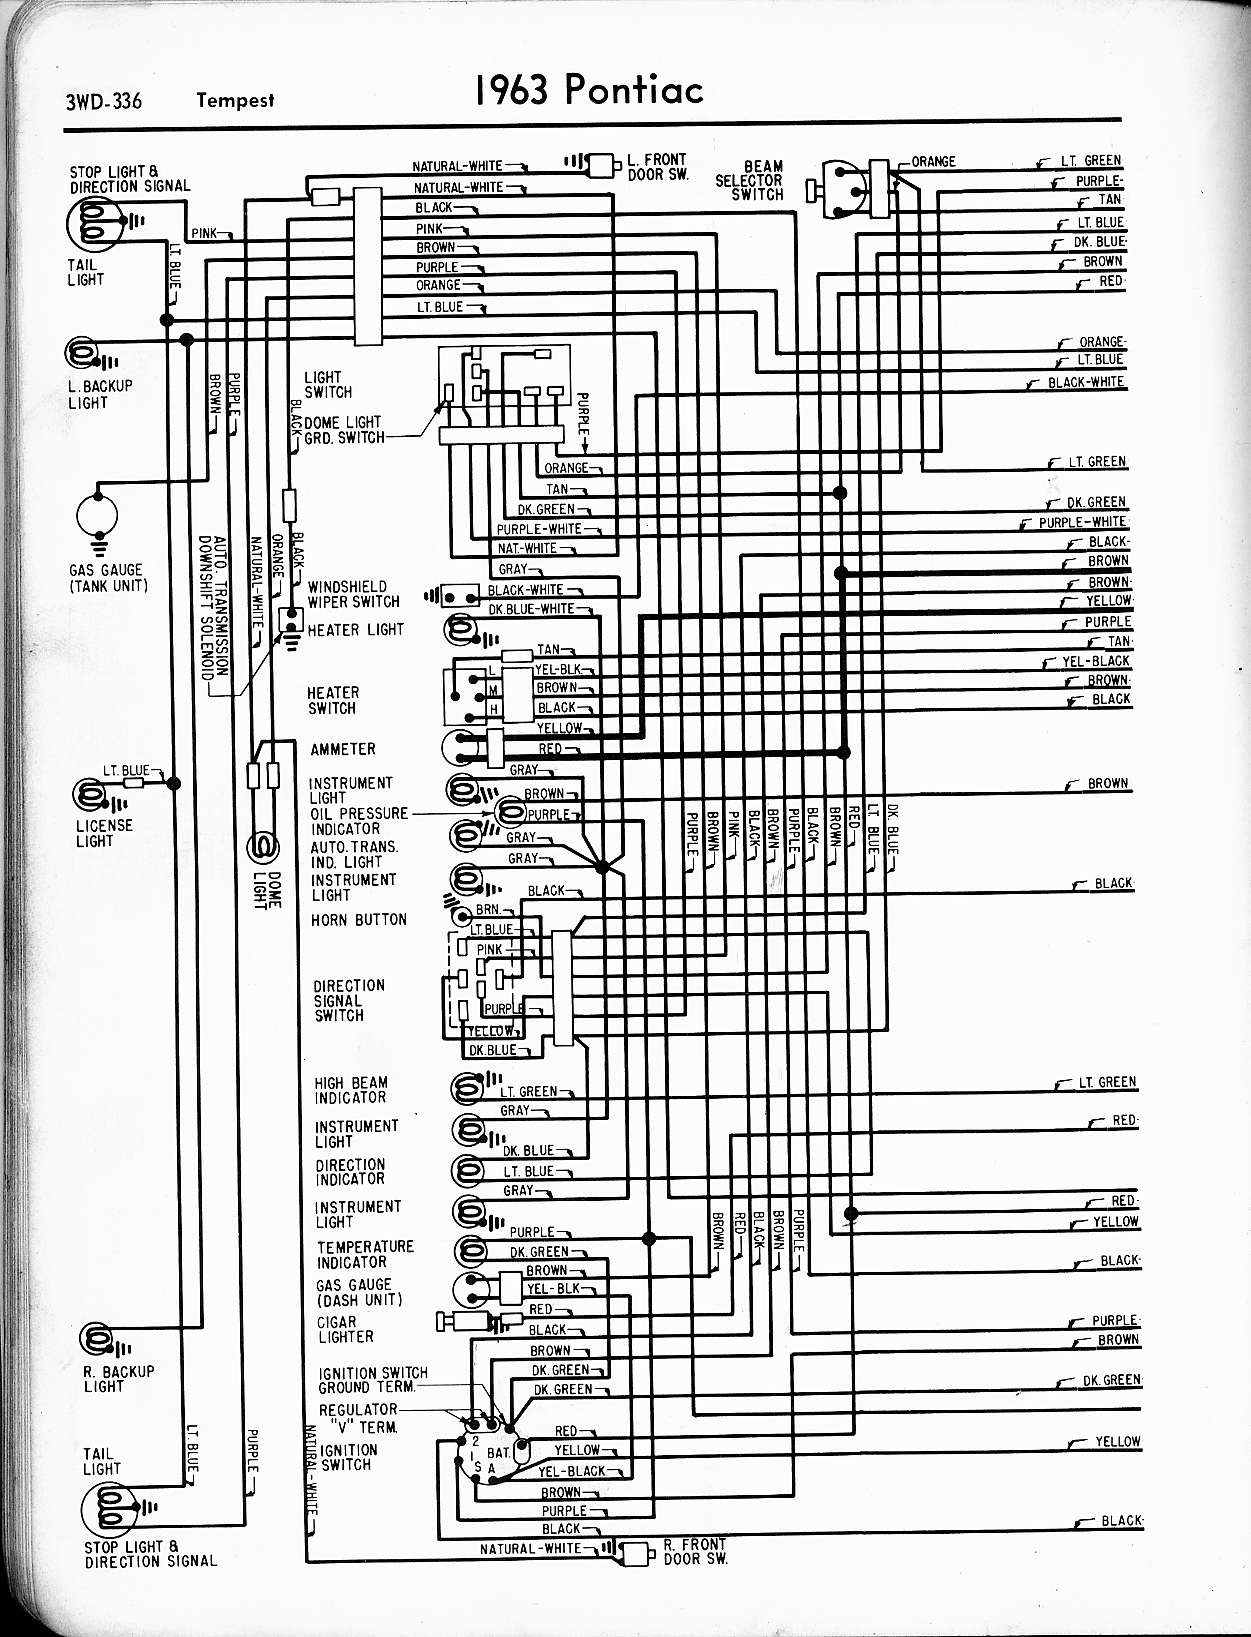 1970 Pontiac Lemans Wiring Diagram Product Diagrams Wallace Racing Rh Wallaceracing Com 1973